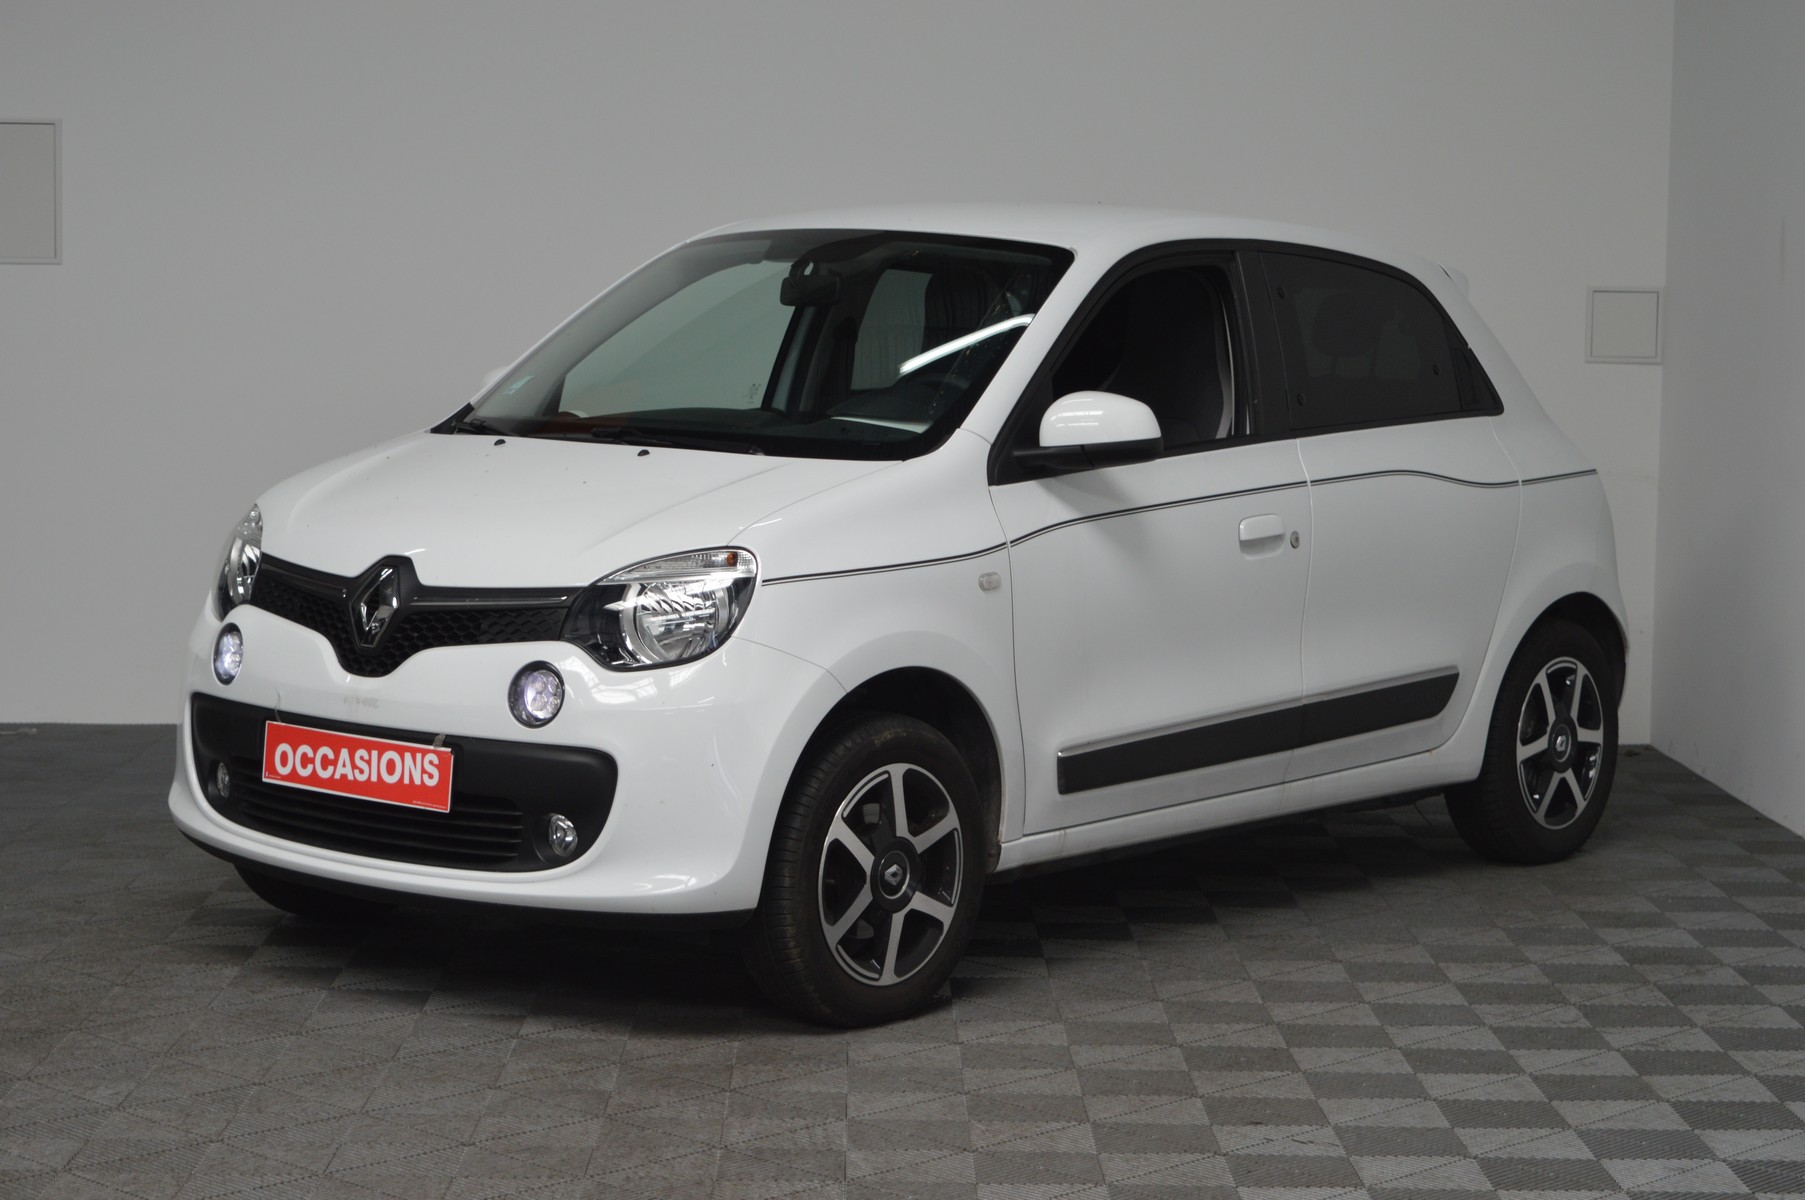 RENAULT TWINGO III 2019 à 9400 € - Photo n°1